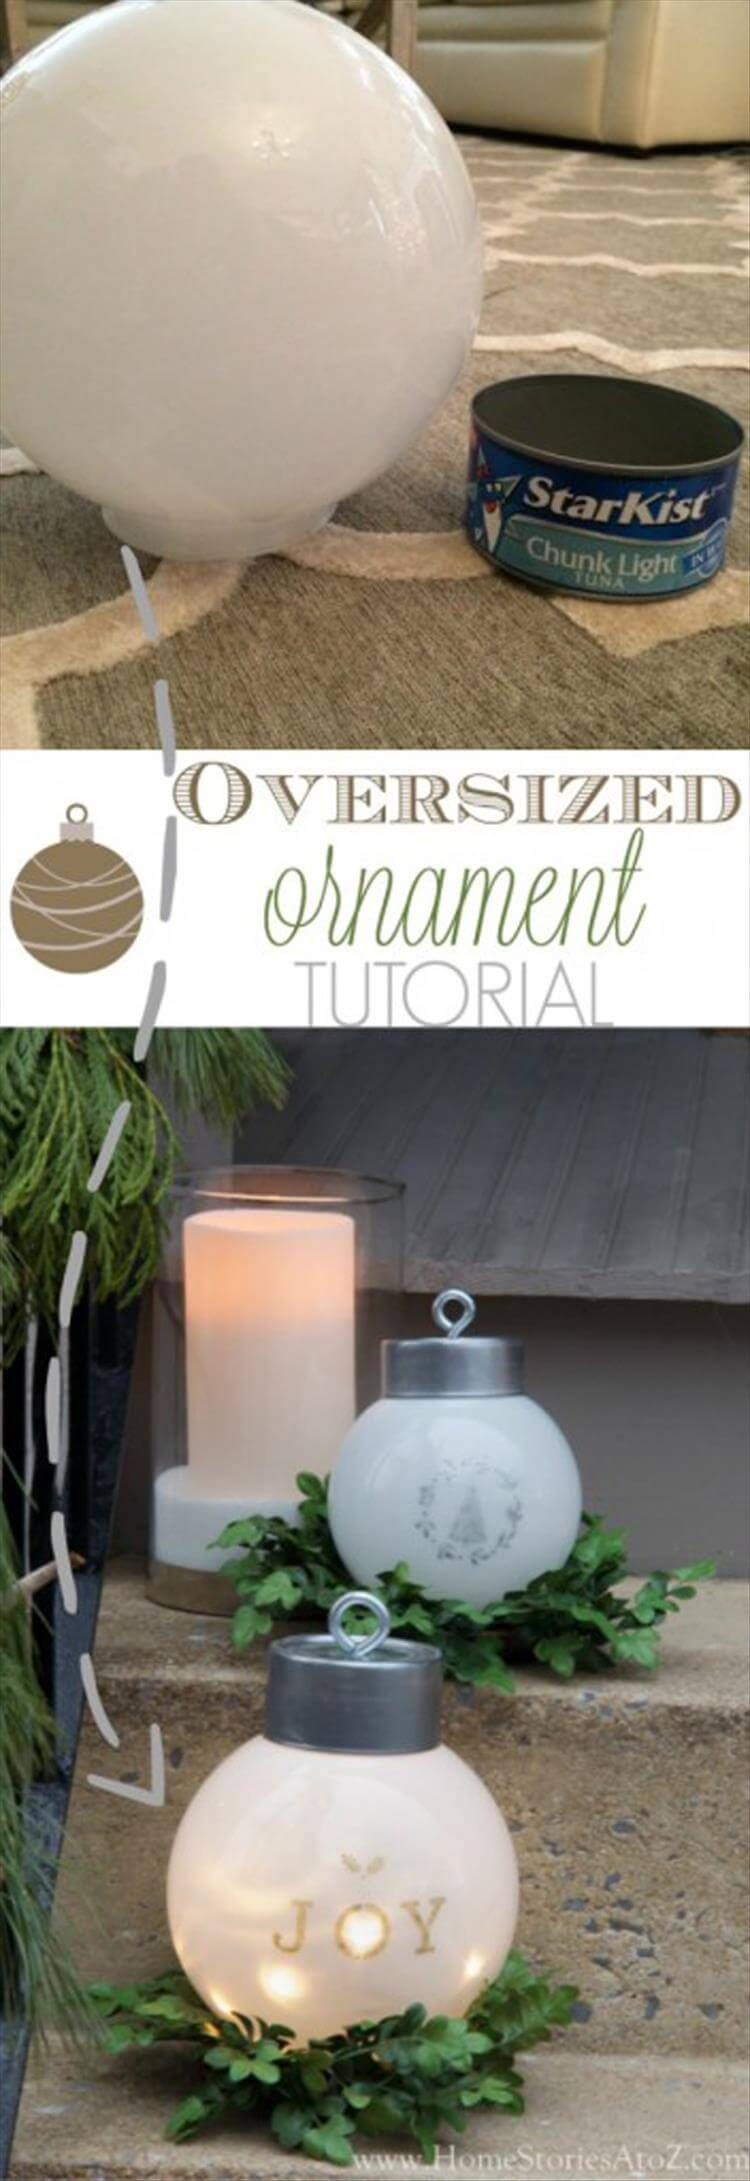 Oversized Christmas Tree Ornament and Lighting